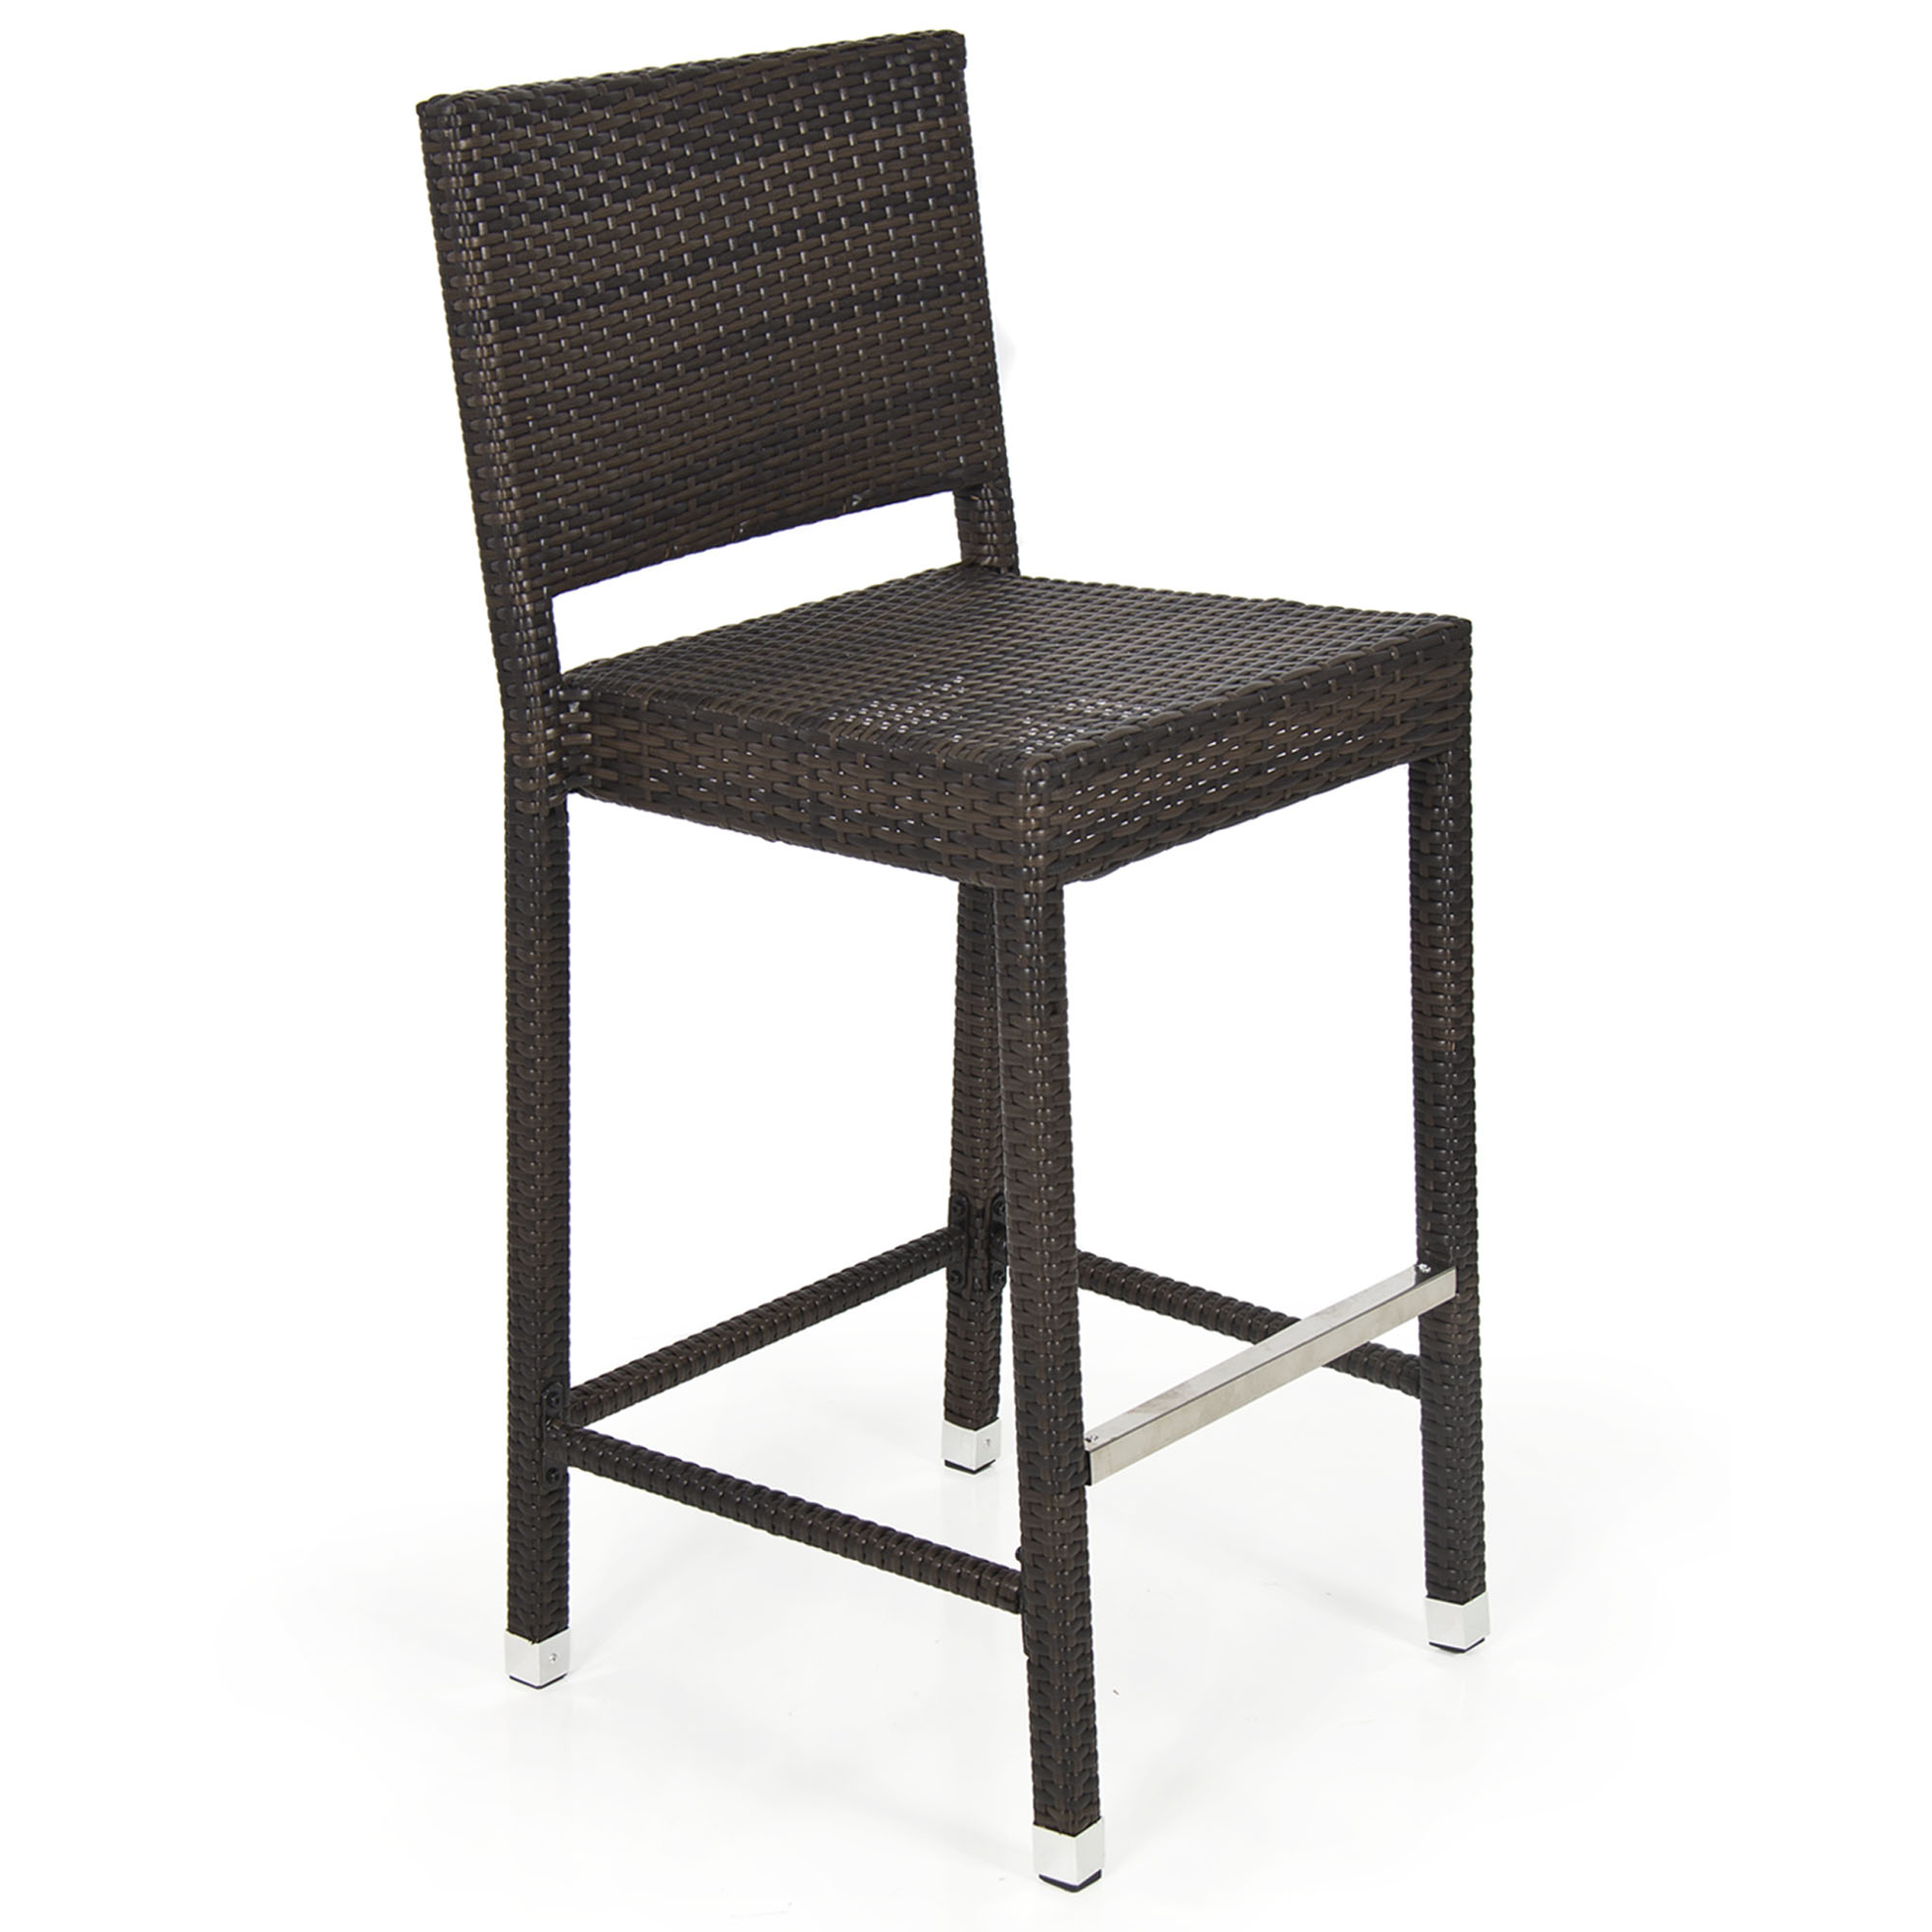 Bar Stools For A Bar Part - 32: Outdoor Wicker Barstool All Weather Brown Patio Furniture New Bar Stool -  Walmart.com